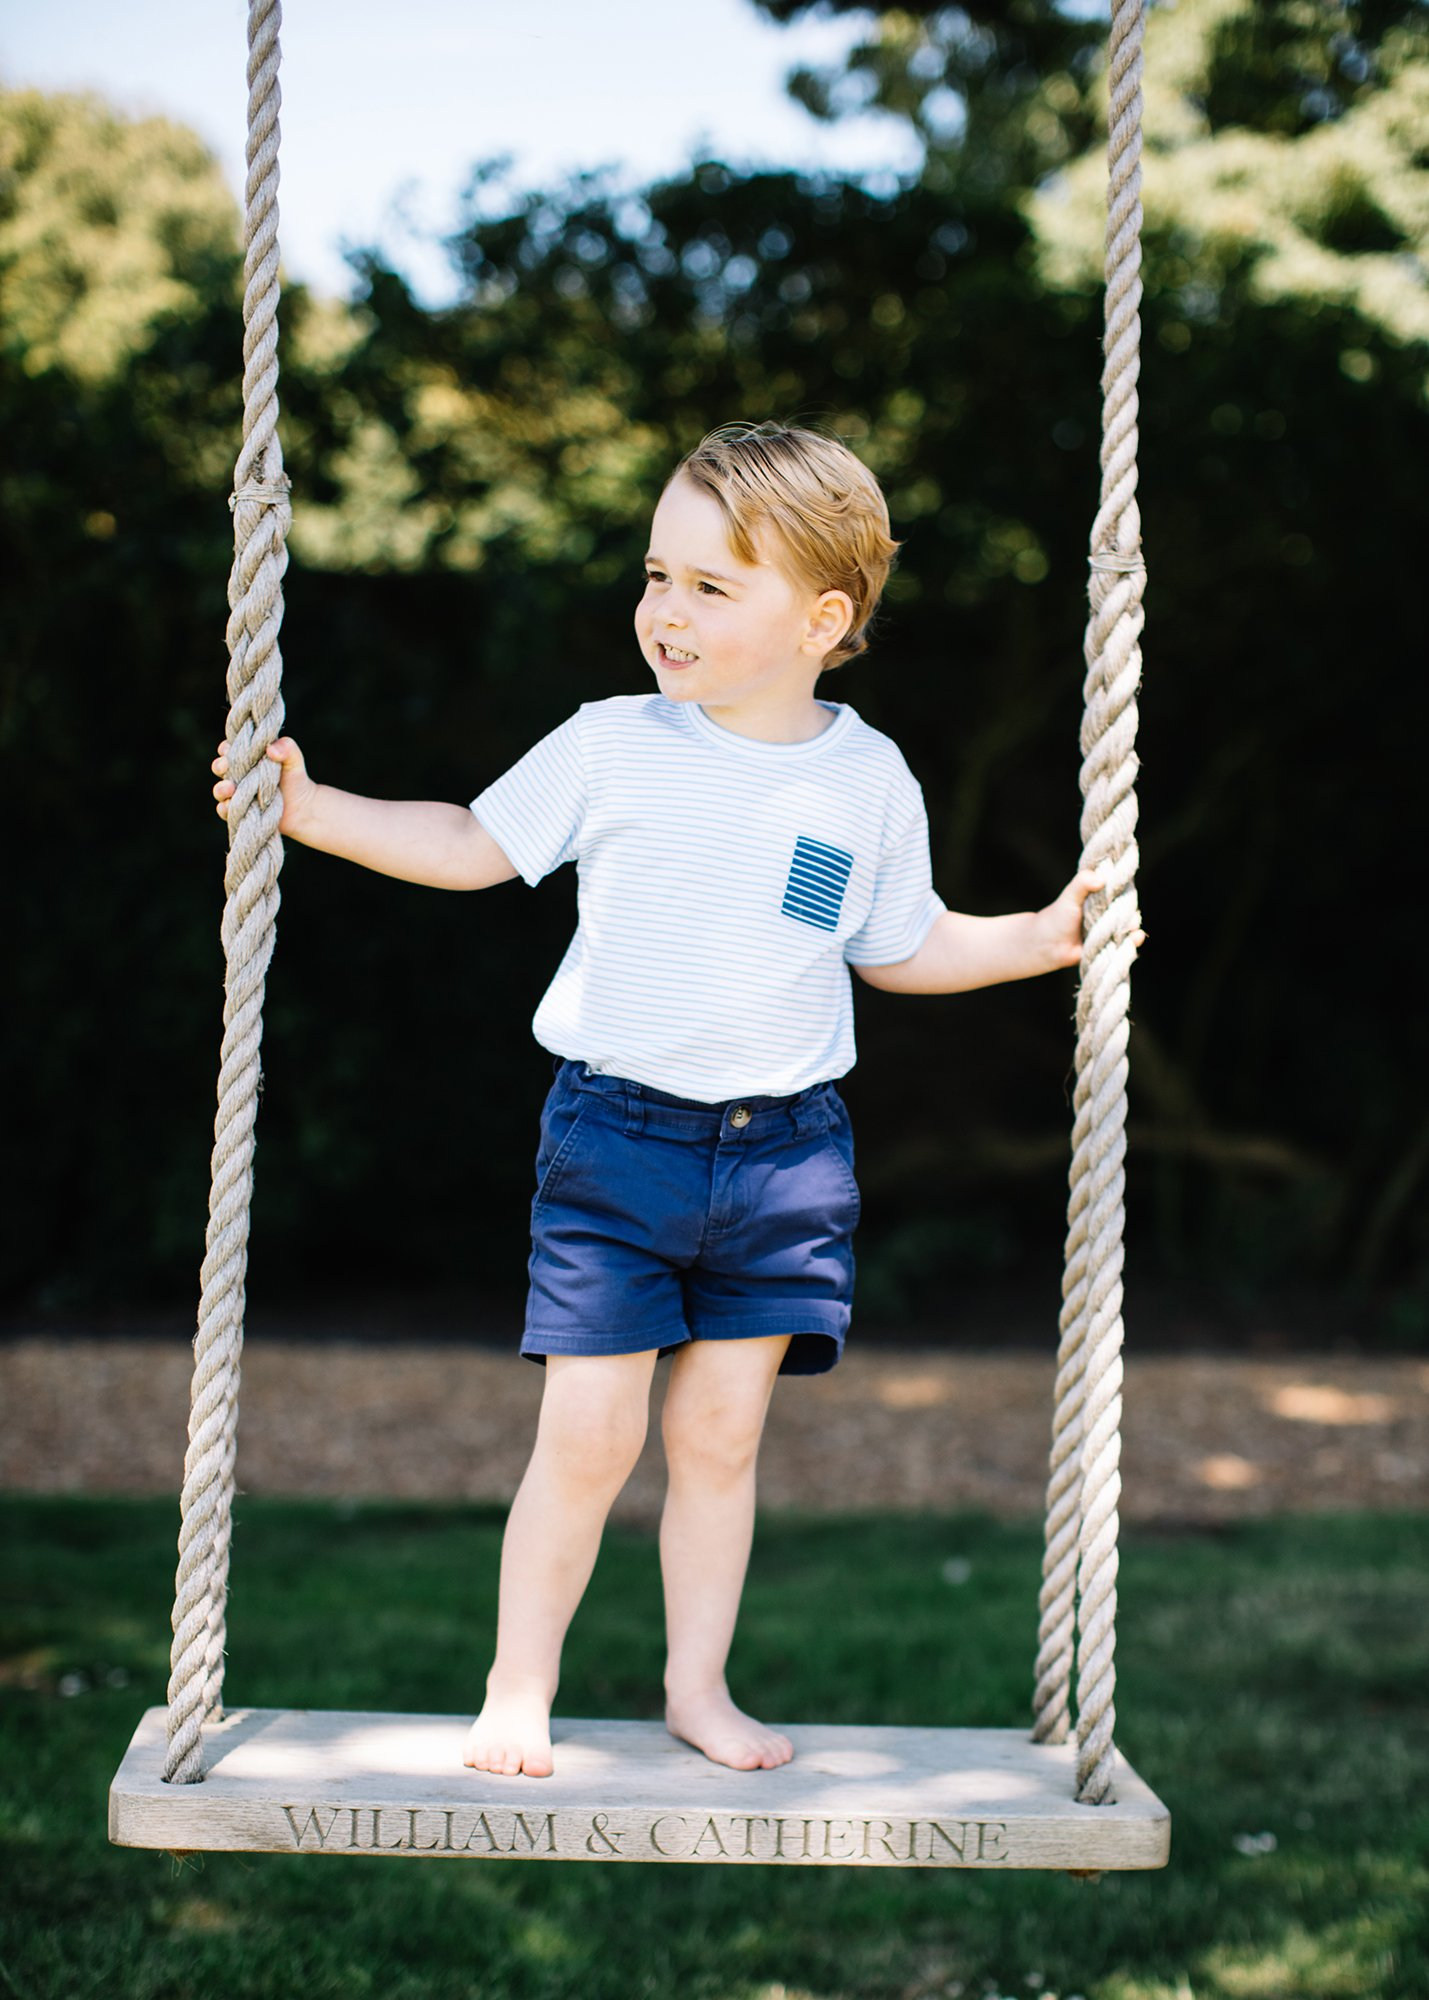 Matt Porteous took the photographs of Prince George at The Duke and Duchess's family home in Norfolk recently. https://t.co/QVluW3KNUH